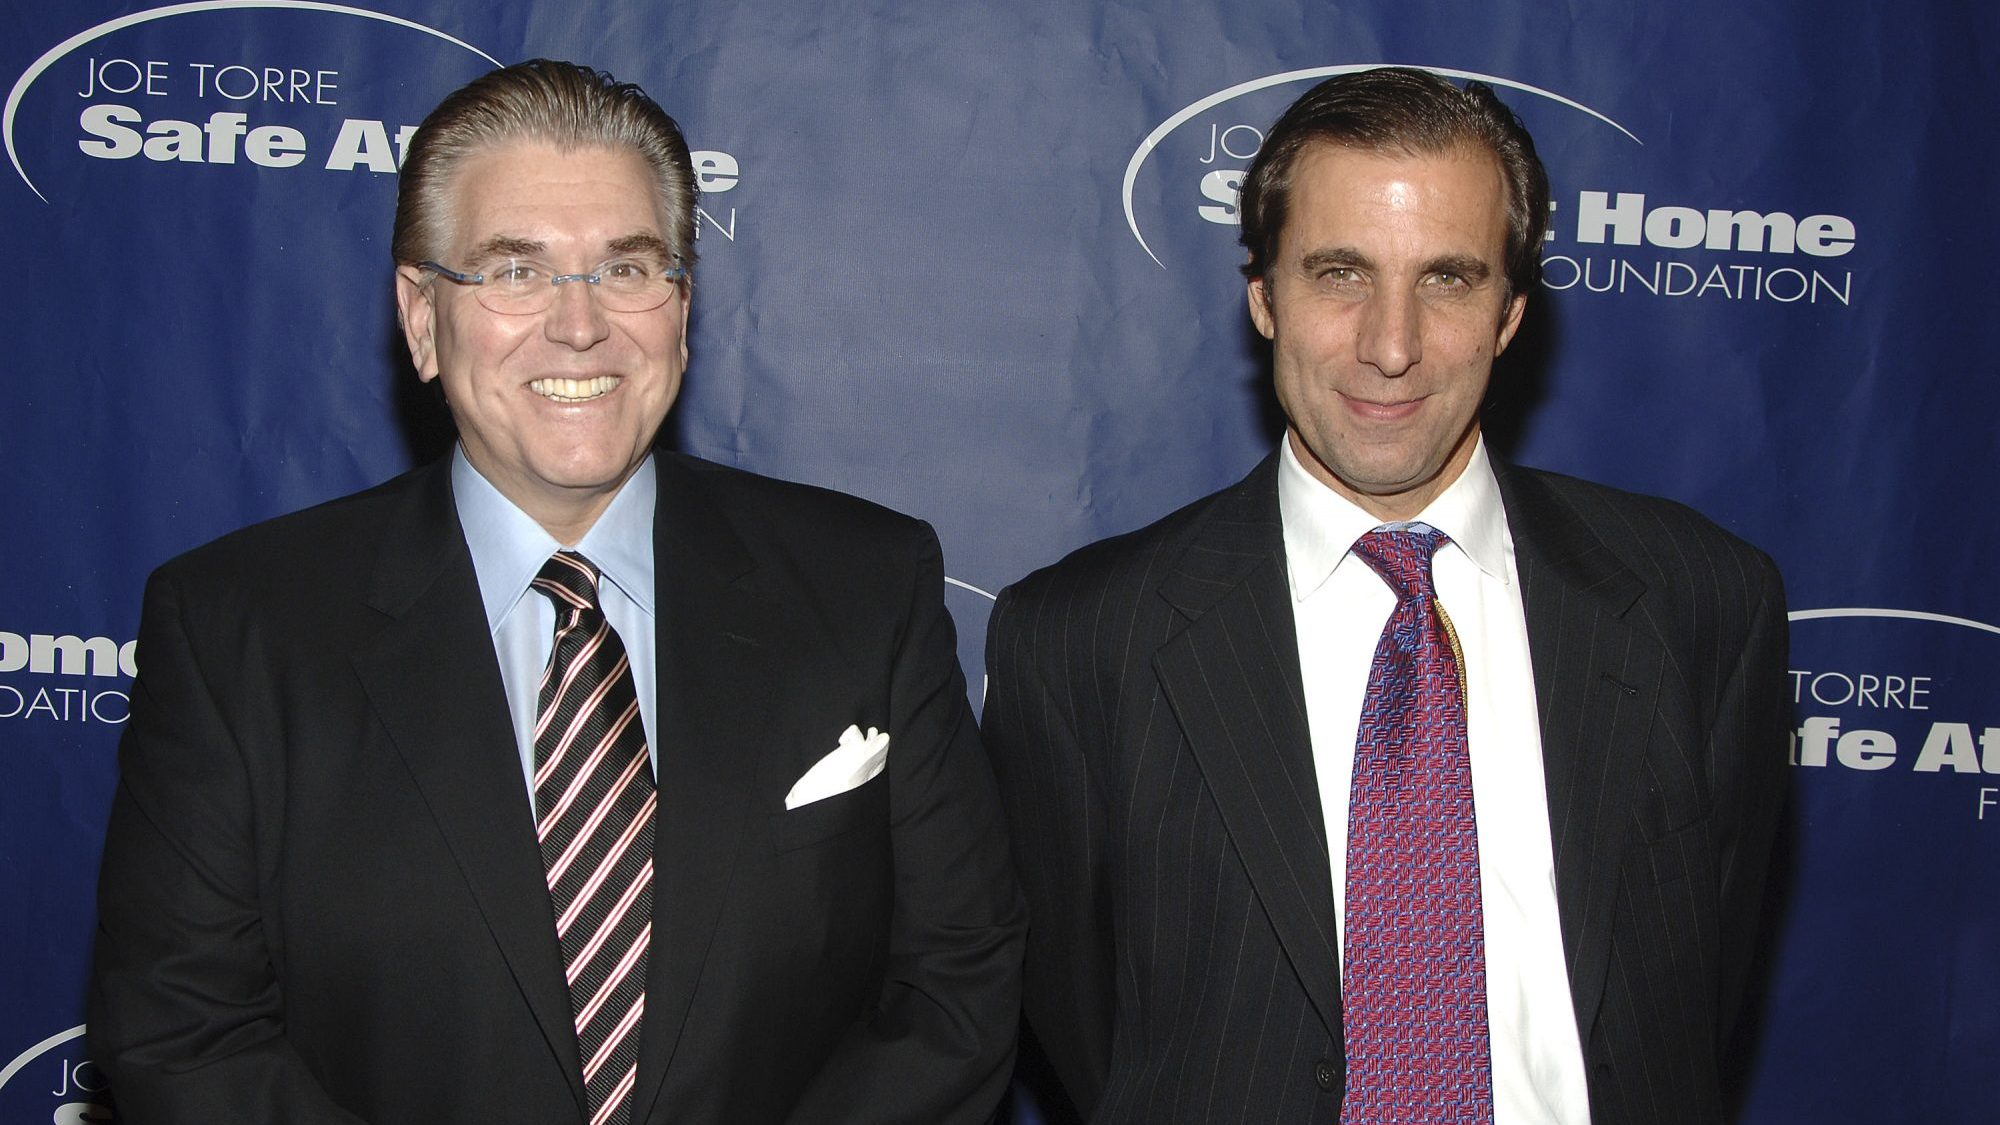 More Mike Francesa Drama: He Says 'It's Time To Return to WFAN'